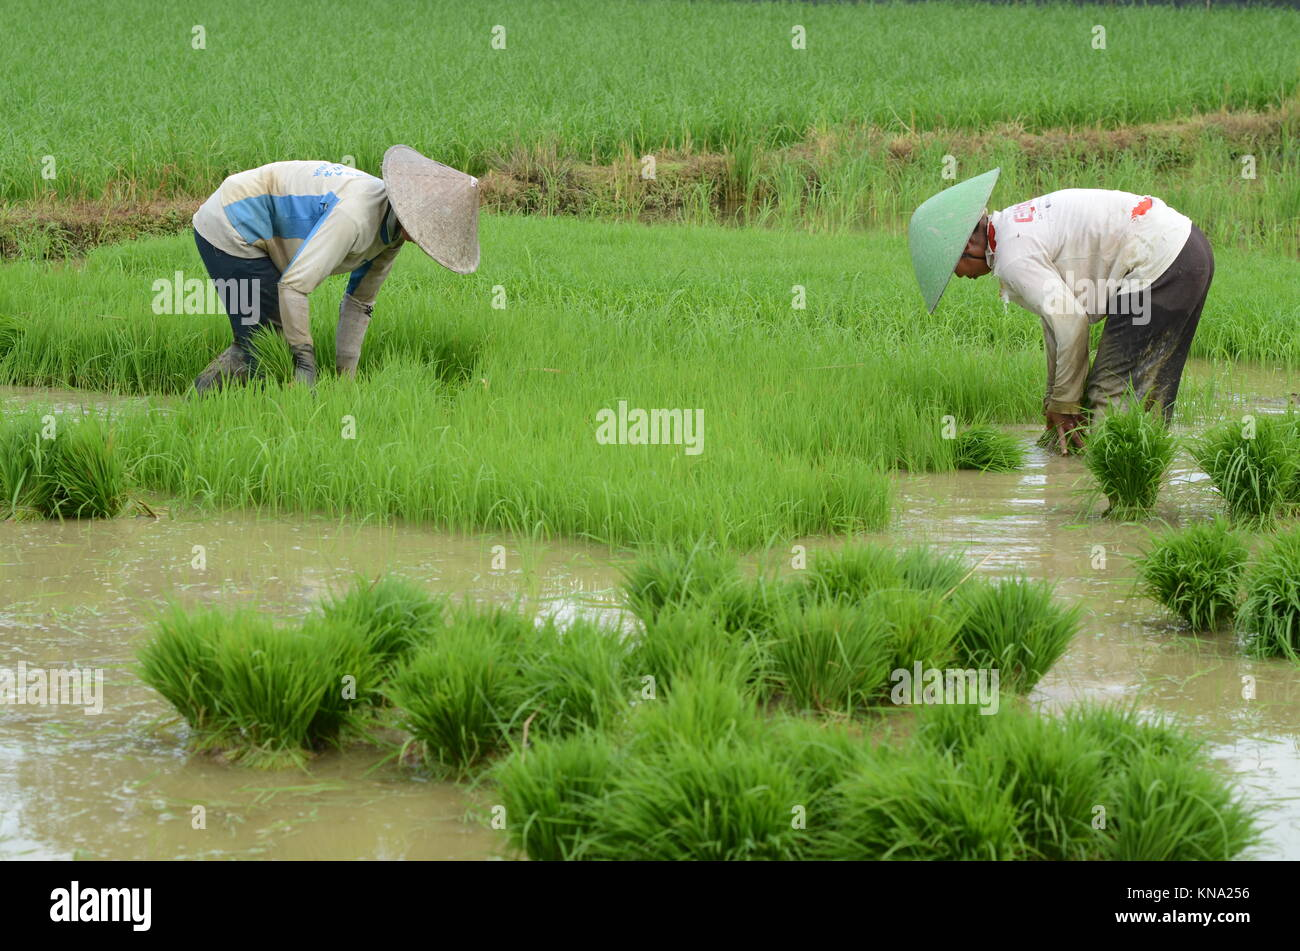 Farmer planting rice in South Sulawesi - Indonesia - Stock Image